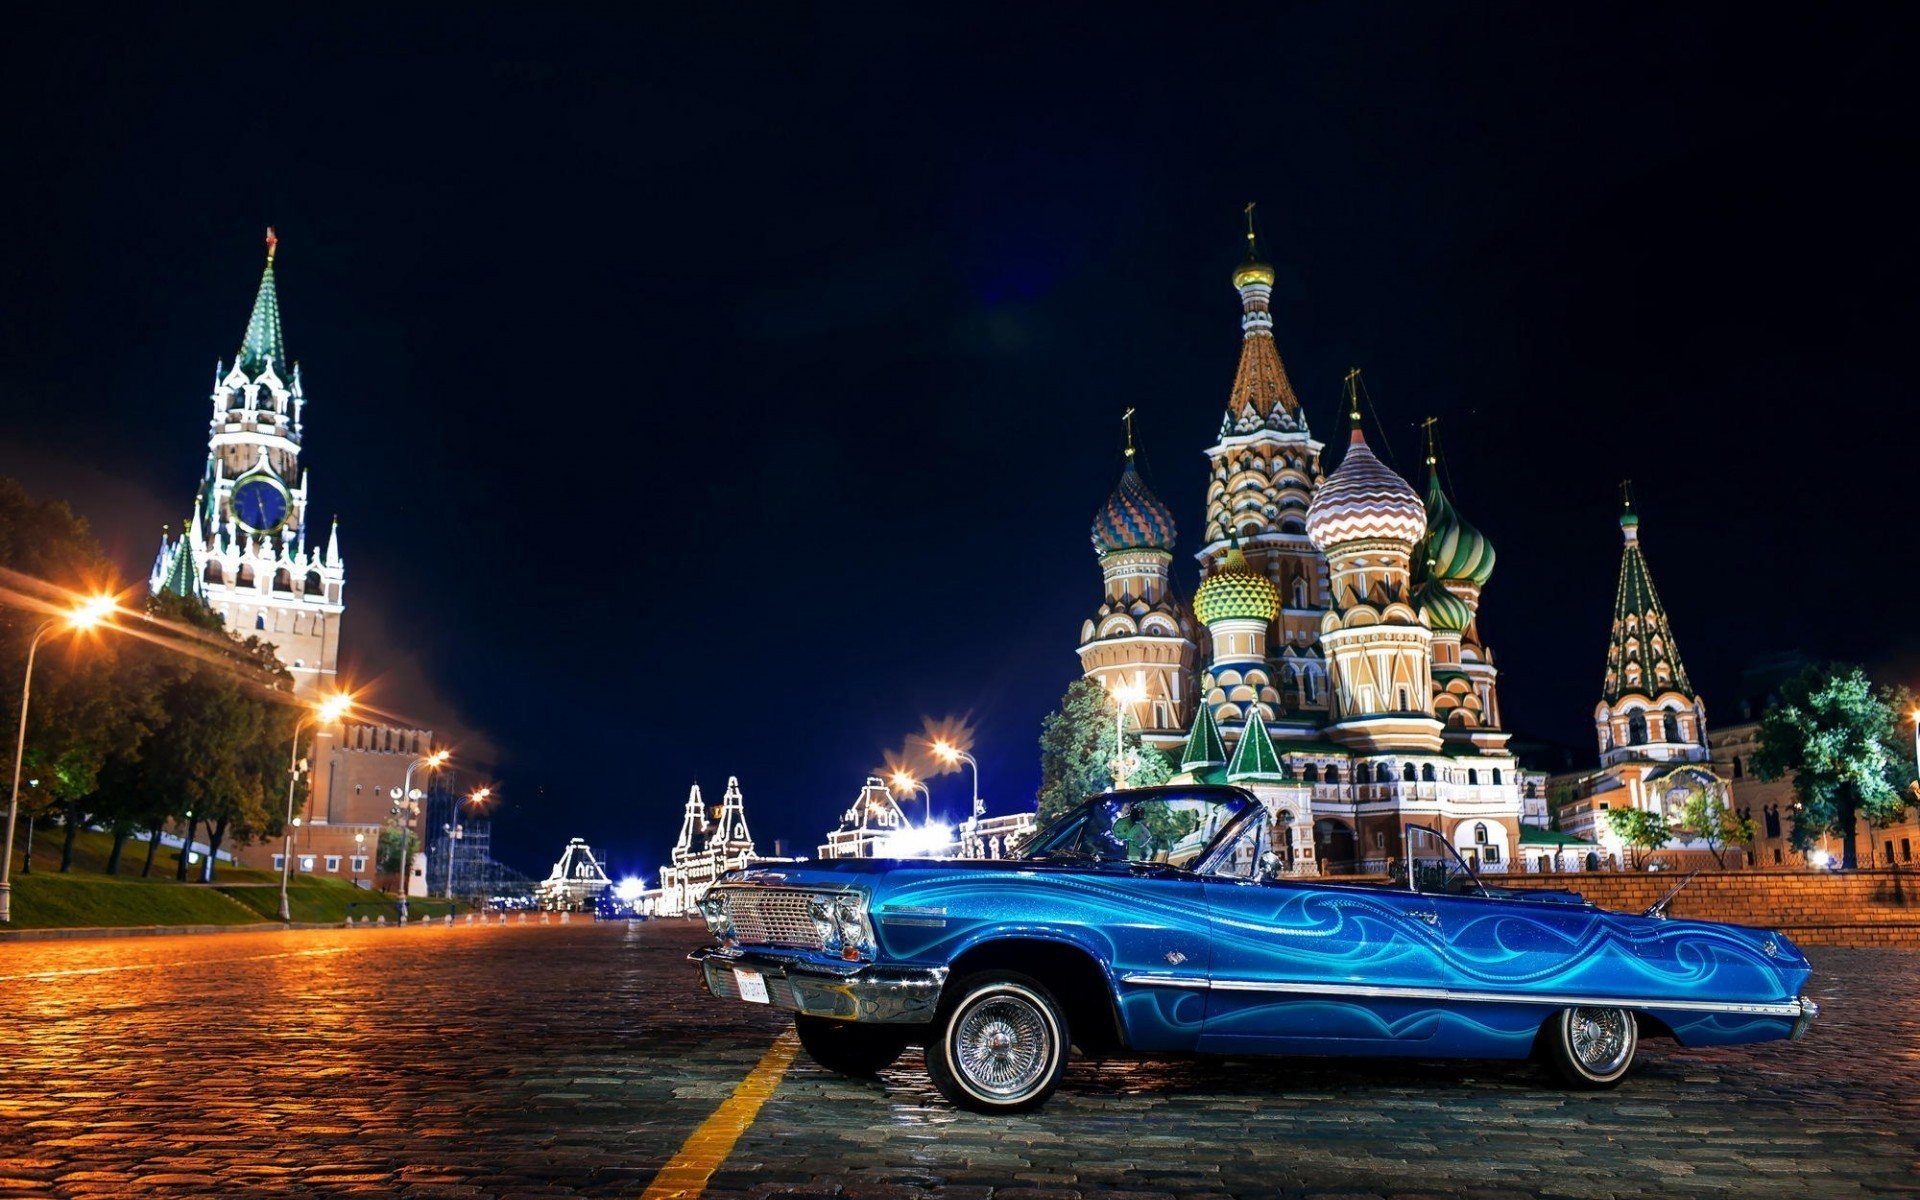 chevrolet architecture travel church kremlin city cathedral outdoors river building water sky old chevrolet impala classic cars vintage cars old cars moscow